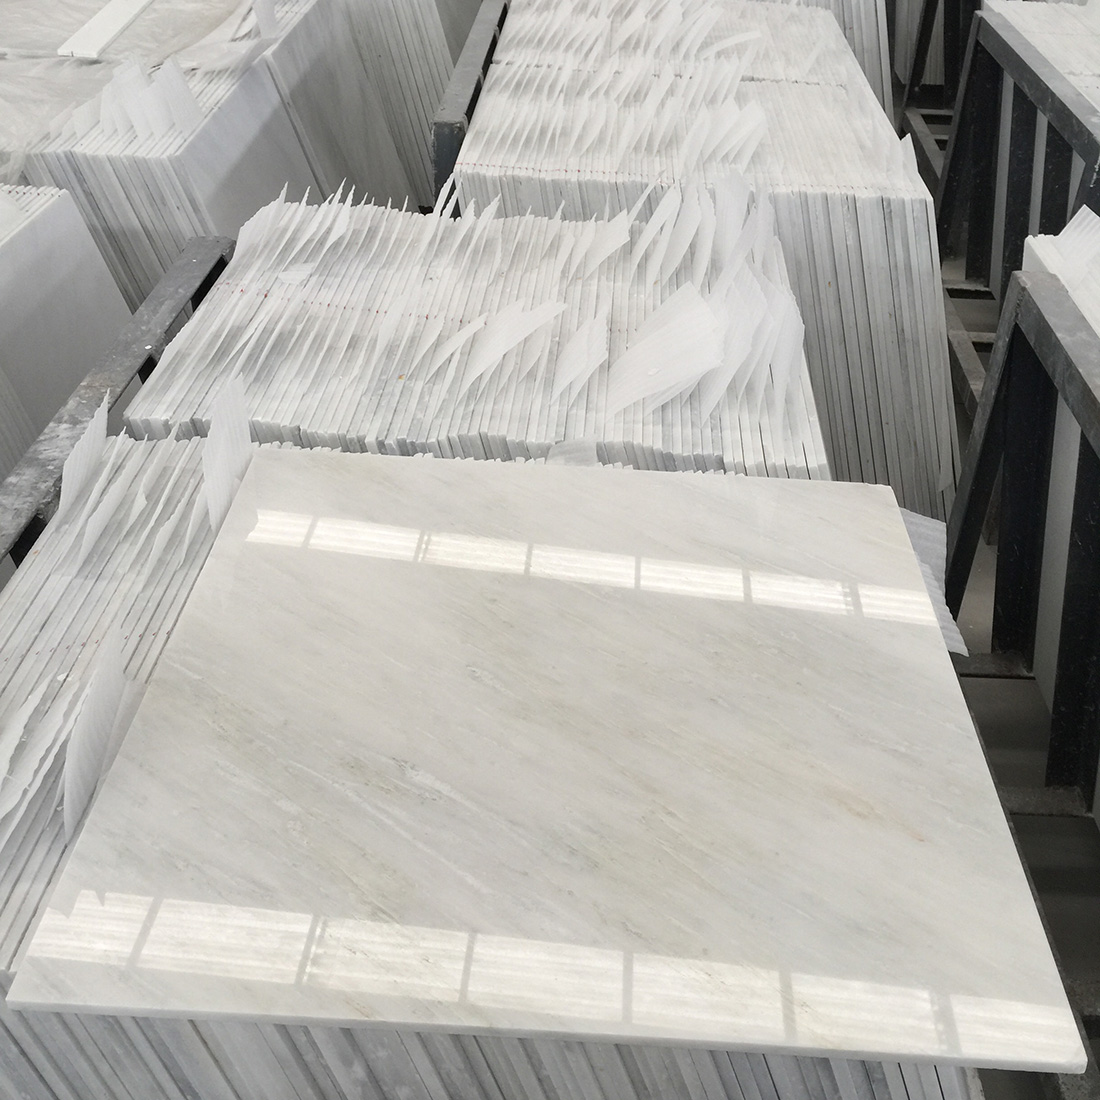 Oriental White Marble Tiles 24*24 inches